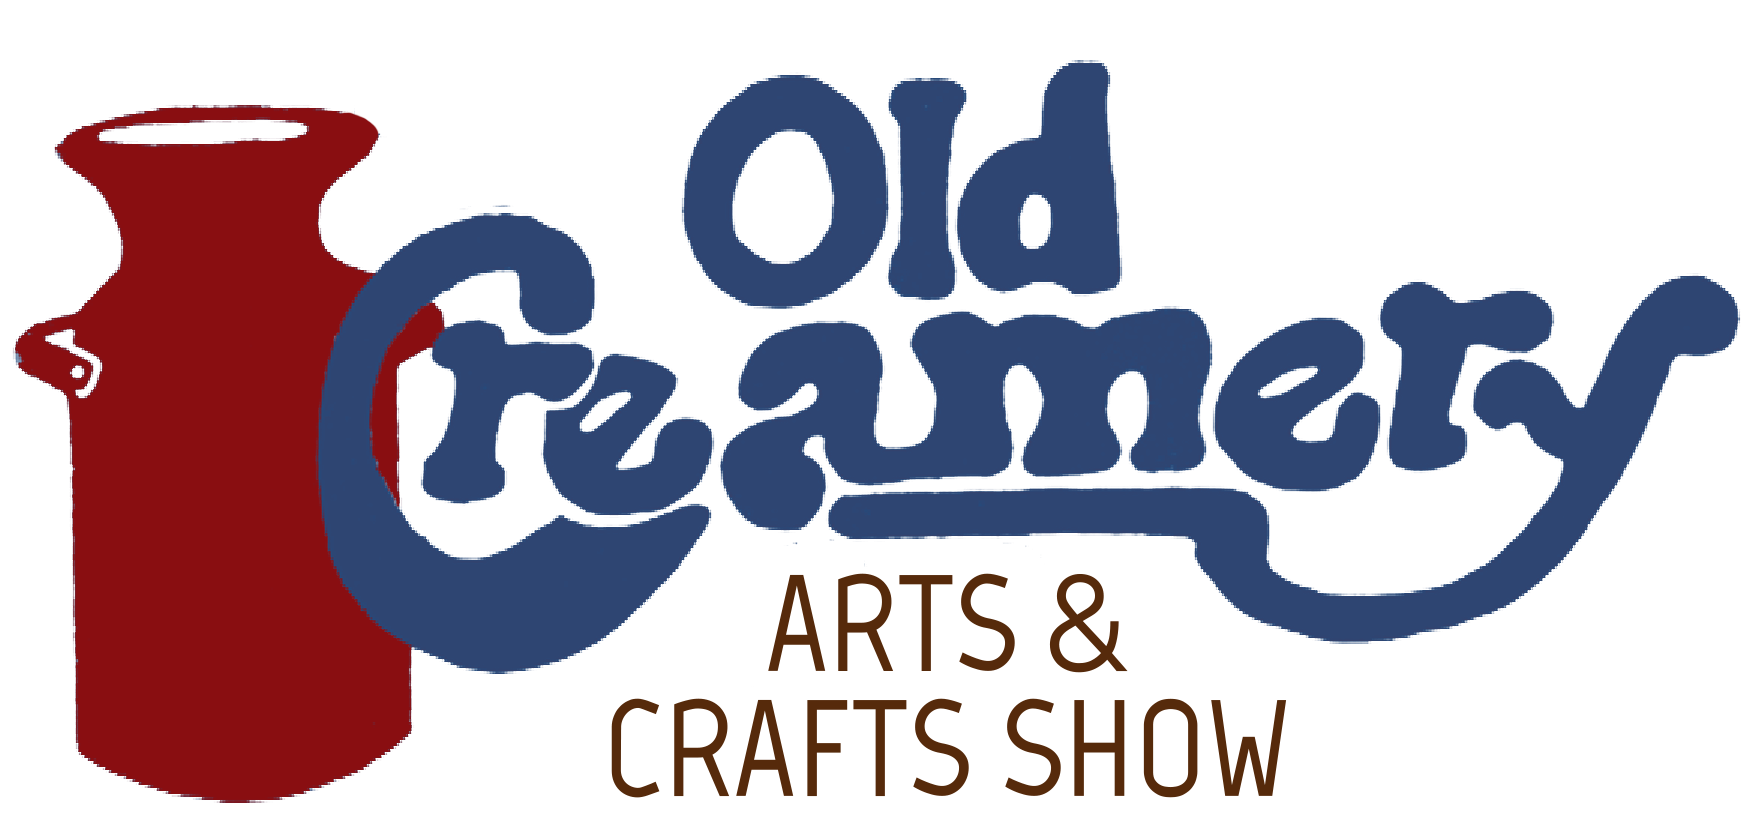 Old Creamery Arts & Crafts Show - logo